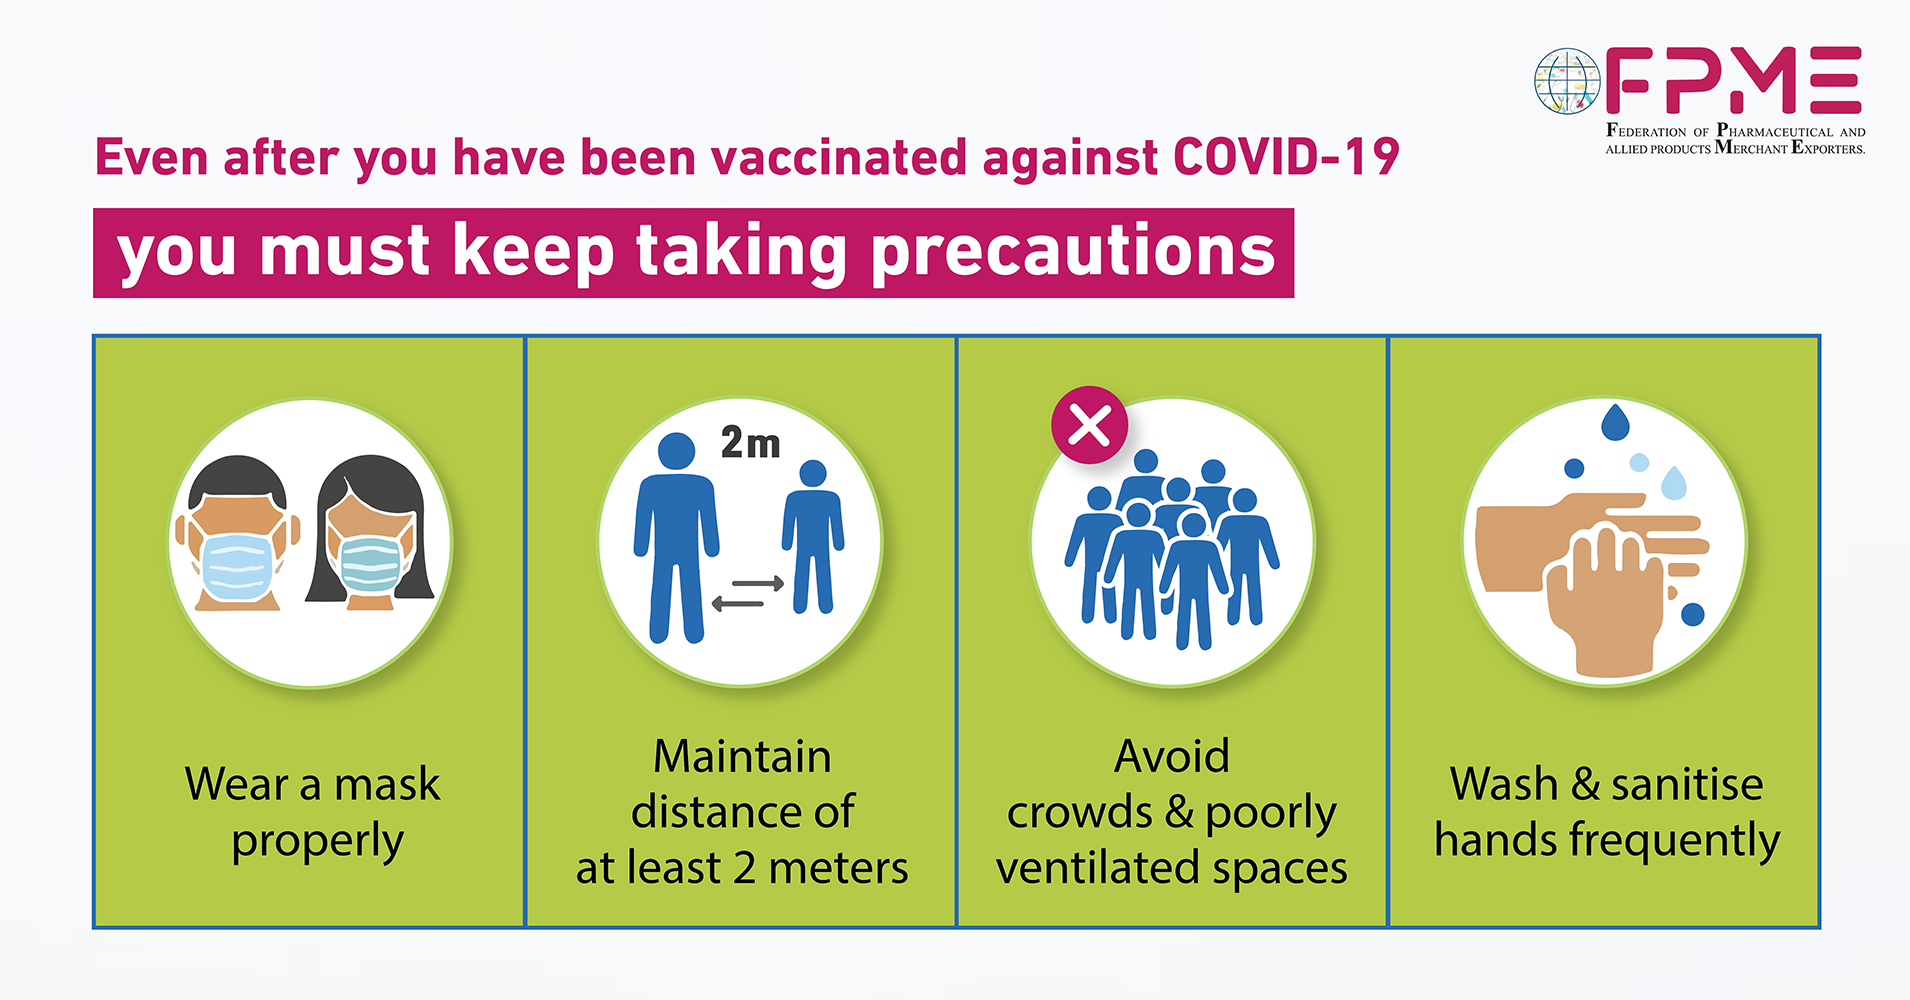 precautions after vaccinated